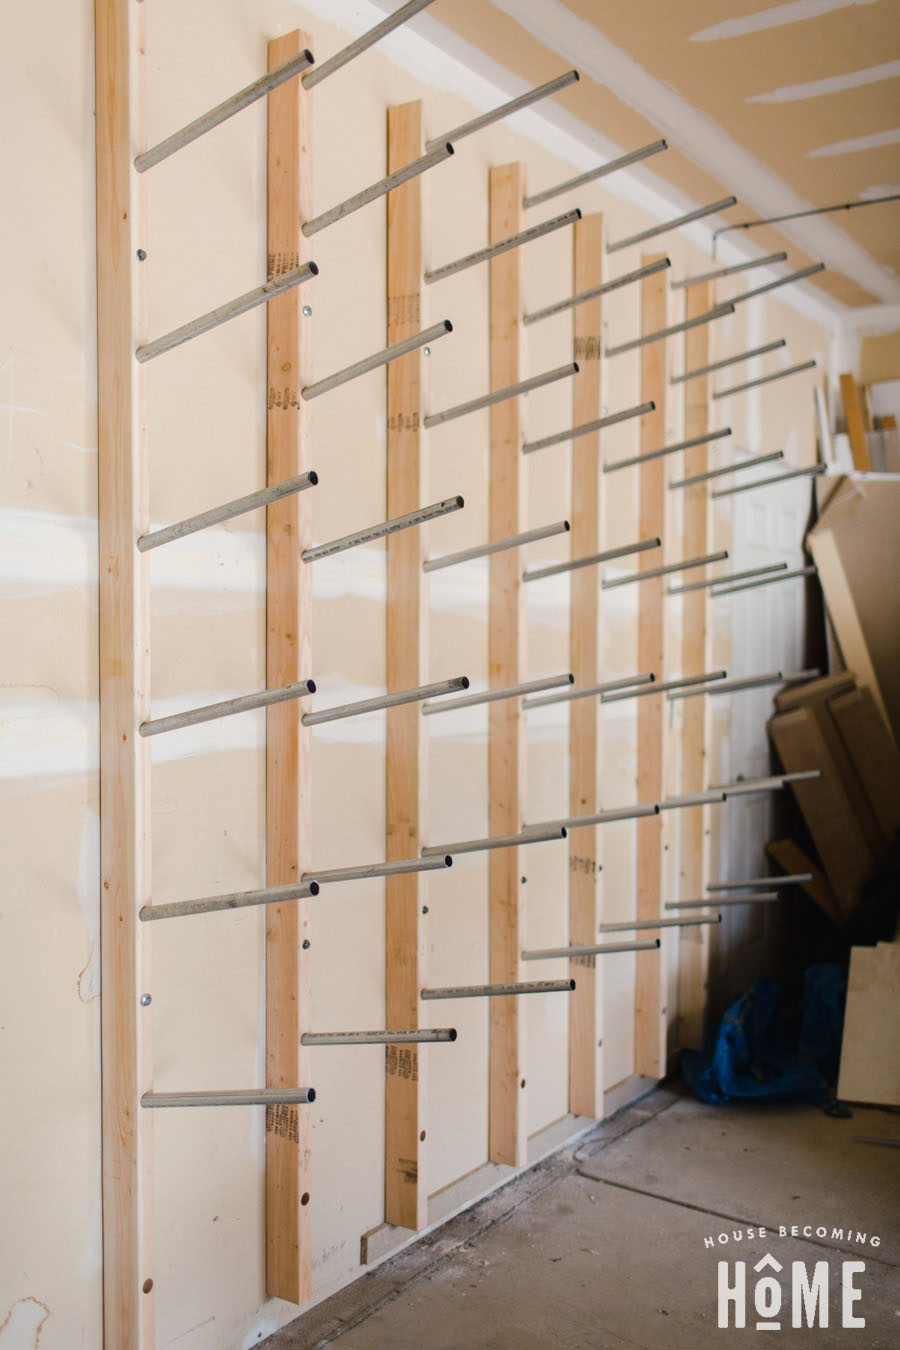 How to Build a DIY Lumber Rack from 2x4s and Conduit Tube